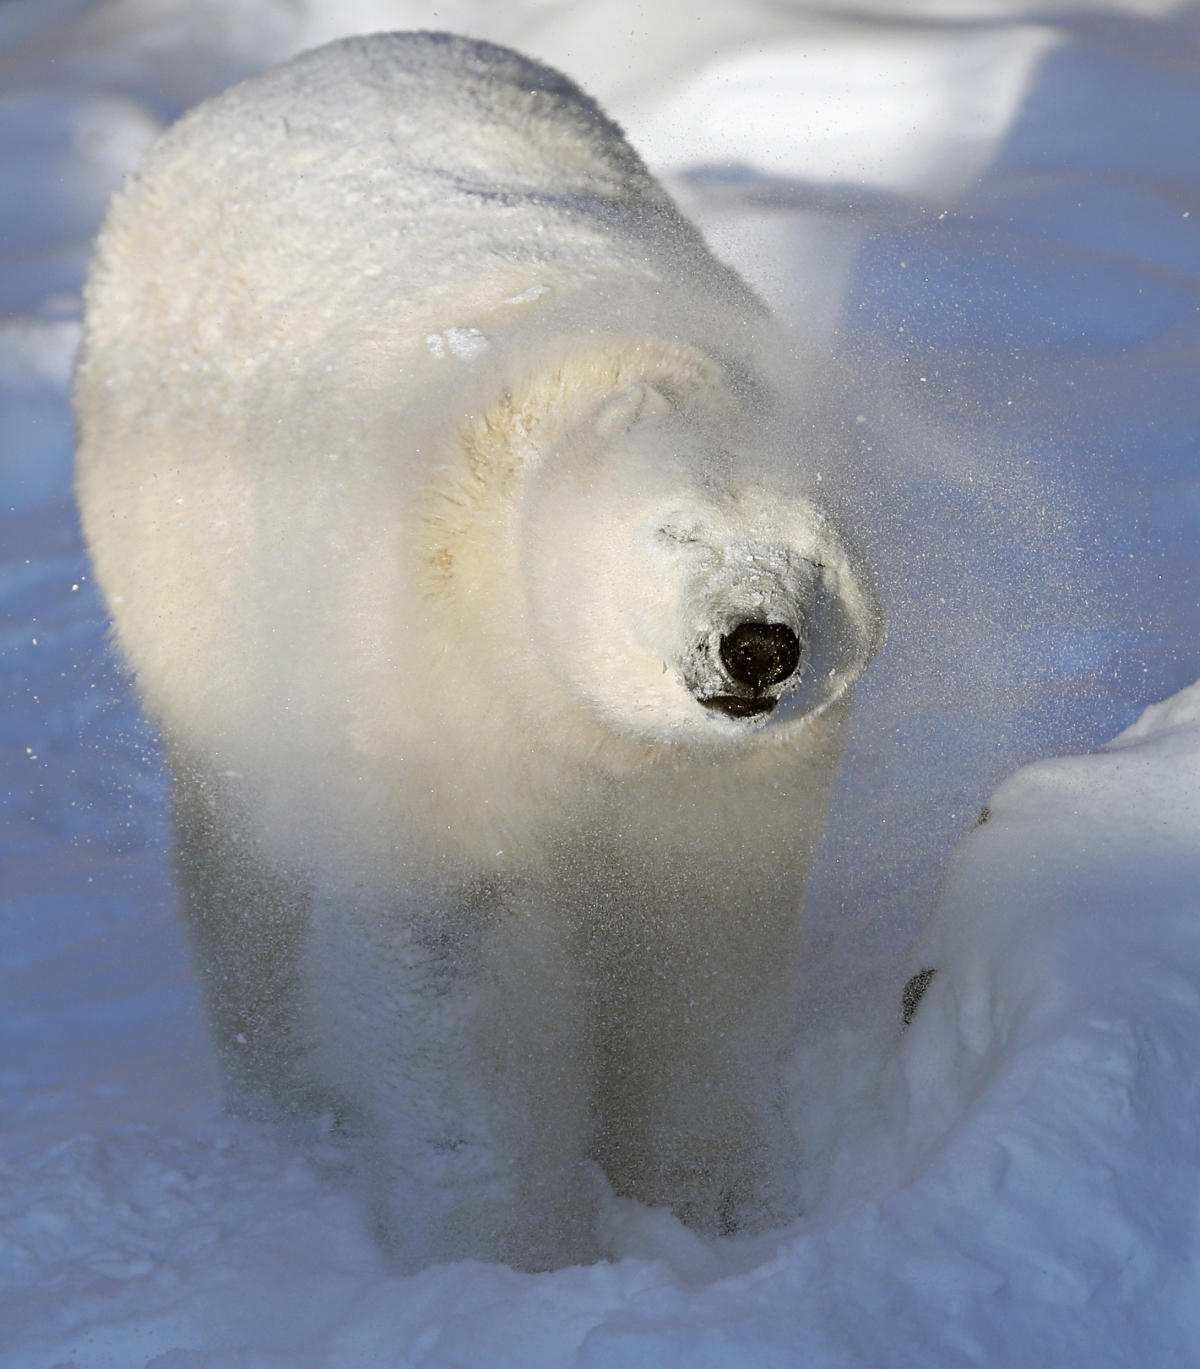 Taiga the polar bear shakes off snow from her body at the Quebec Aquarium in Quebec City, Canada.